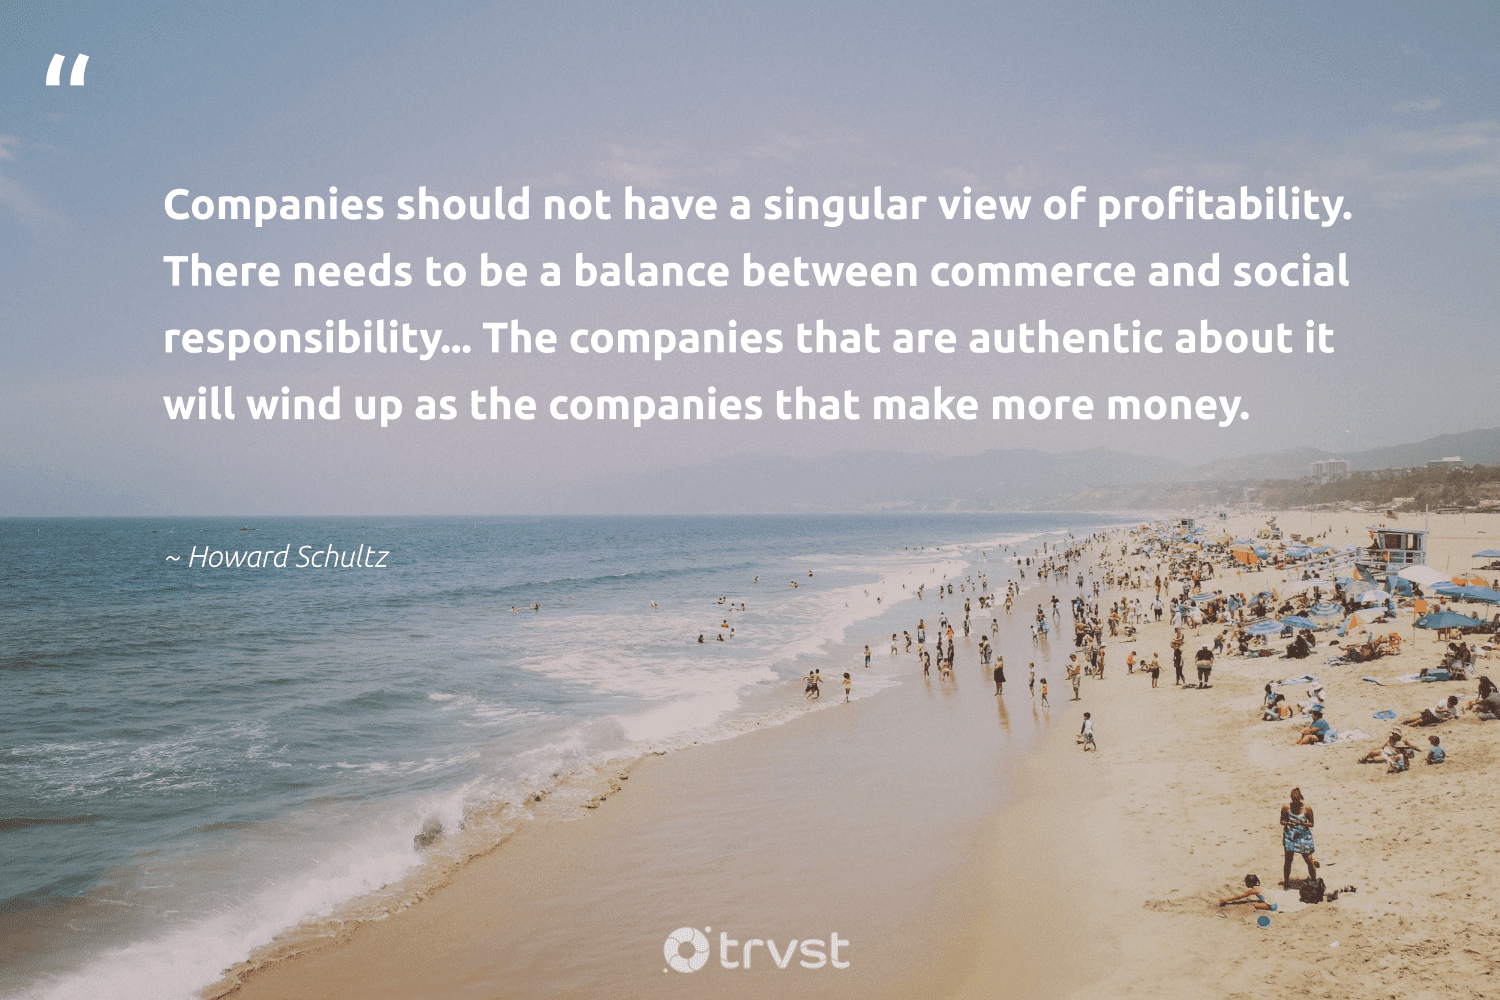 """""""Companies should not have a singular view of profitability. There needs to be a balance between commerce and social responsibility... The companies that are authentic about it will wind up as the companies that make more money.""""  - Howard Schultz #trvst #quotes #balance #healthylifestyle #dogood #begreat #collectiveaction #eatclean #weareallone #mindset #gogreen #healthyfood"""